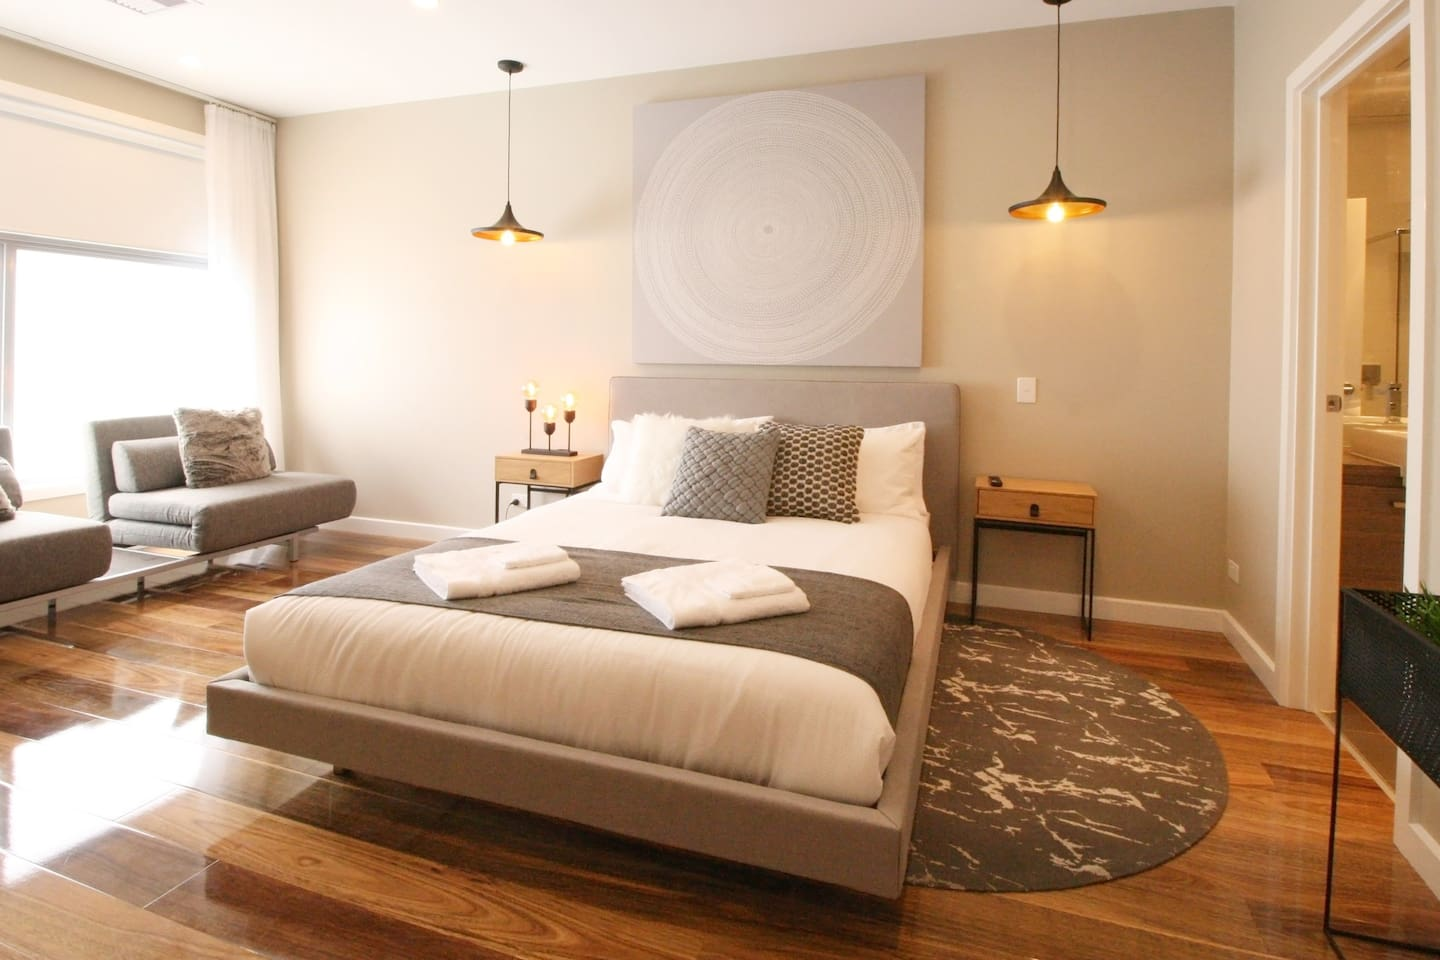 Bedroom 1 can sleep 4 adults, the couch folds out to 2 king single beds or a king..